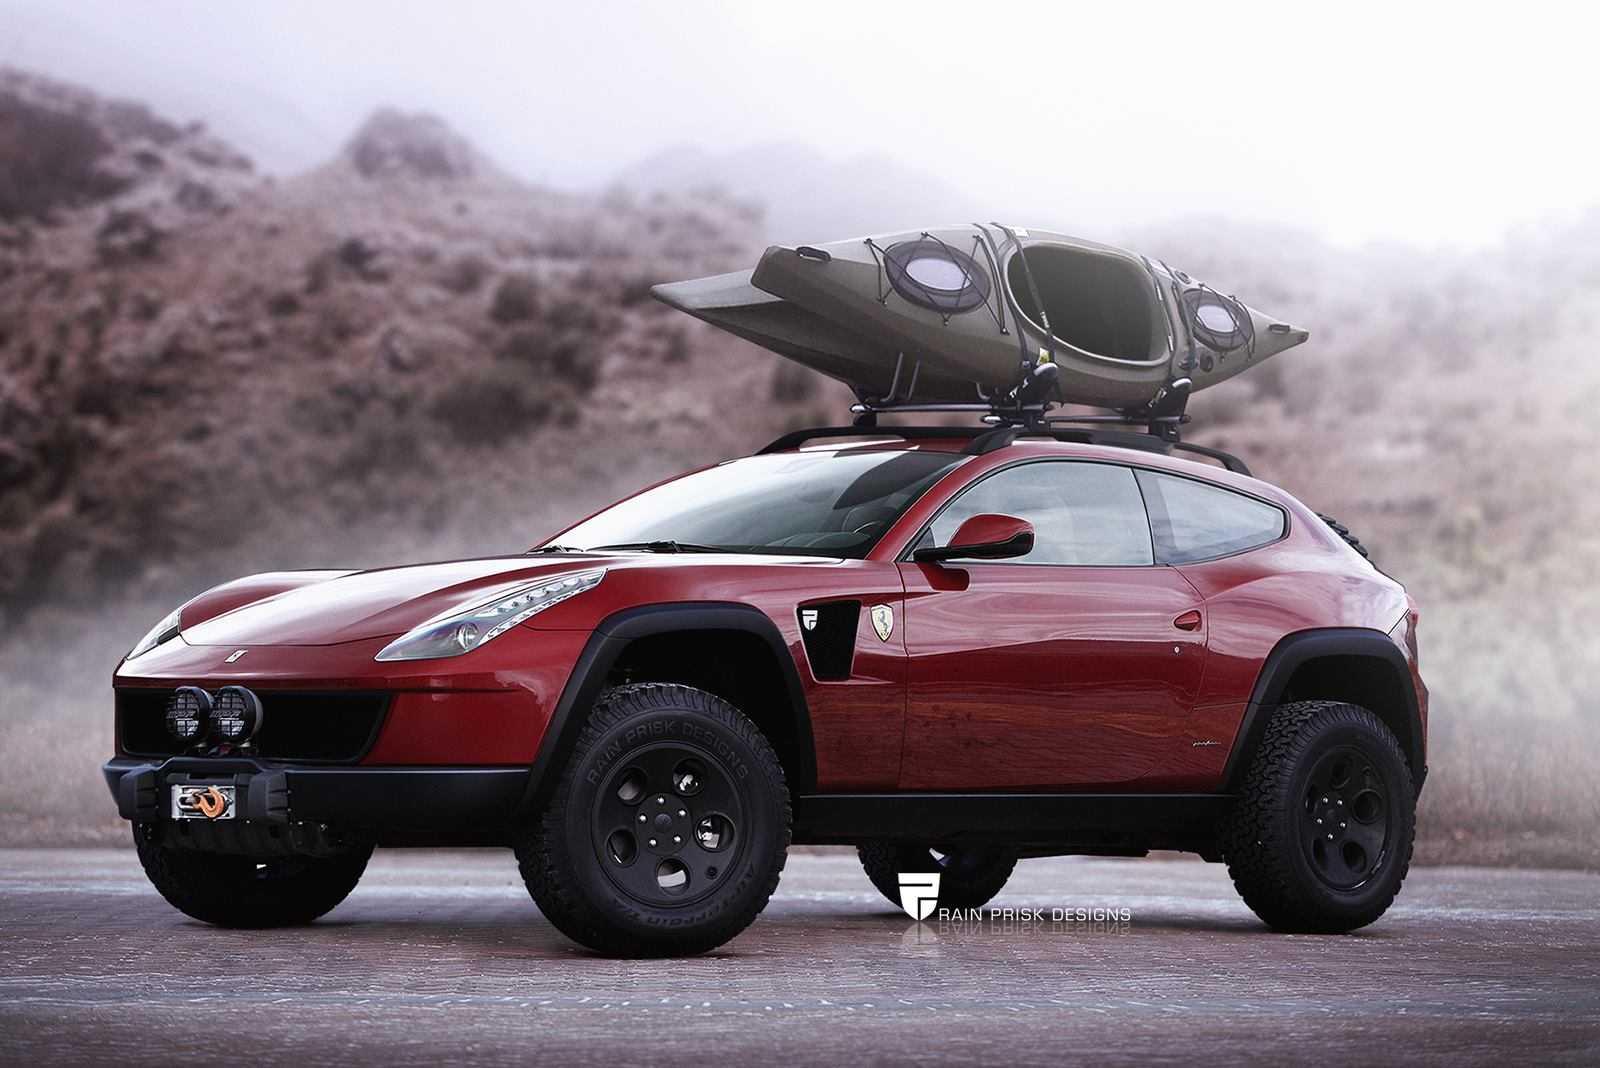 Ferrari FF with Offroad Equipment Would Make for the ...